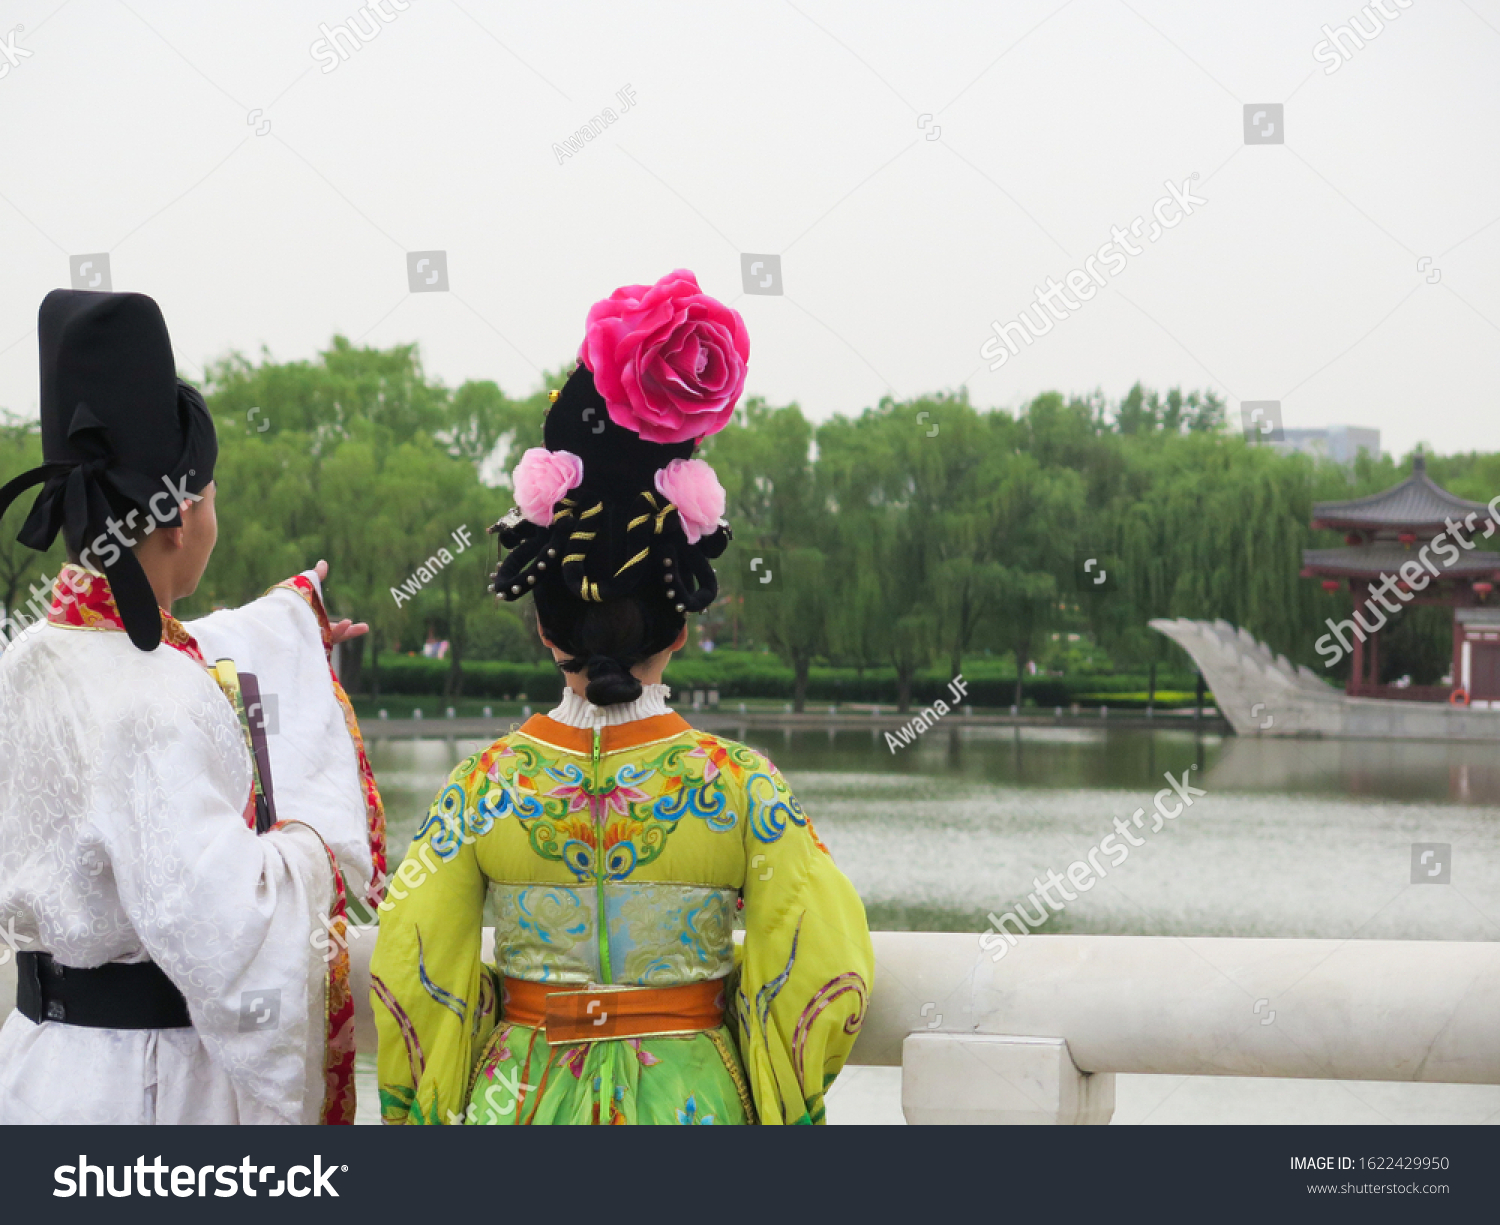 stock-photo-back-view-of-a-couple-wearin